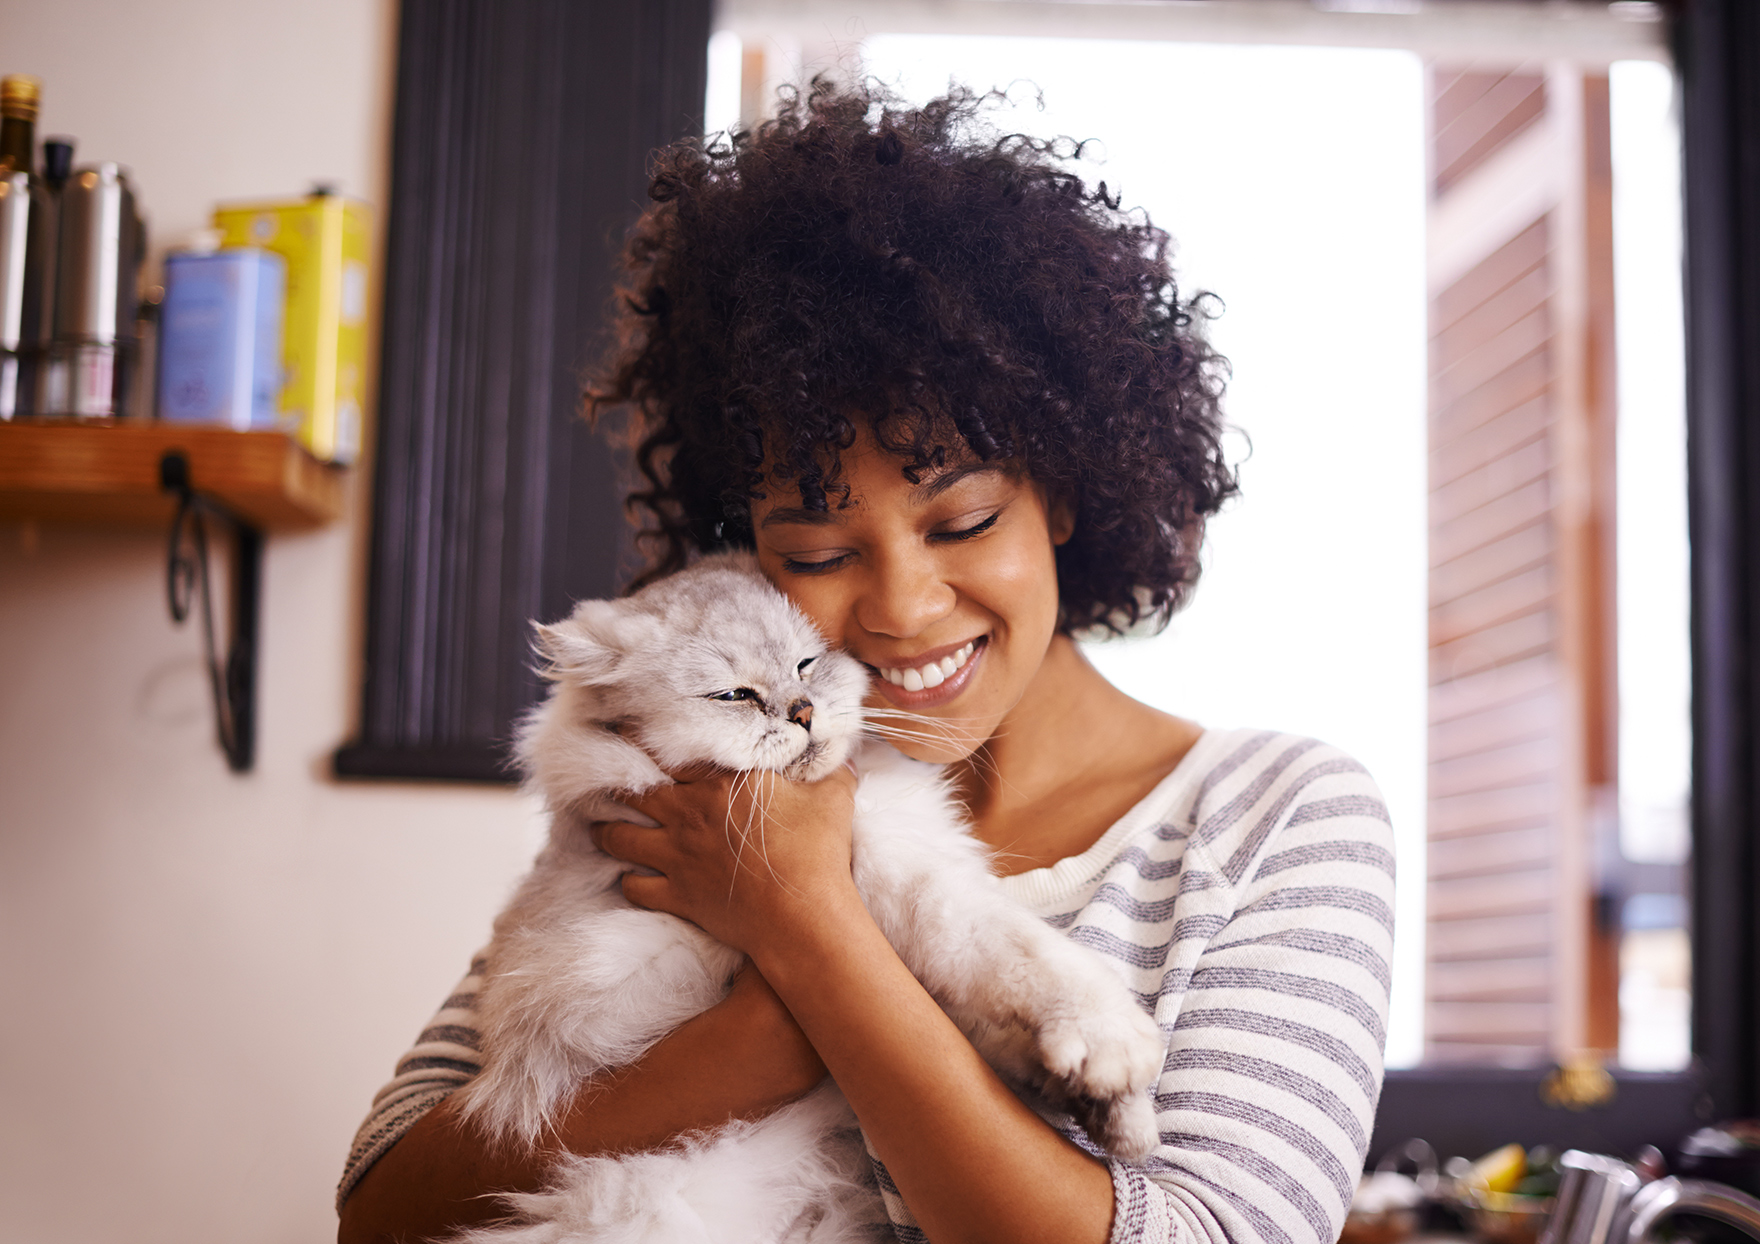 woman holding fluffy cat in her home